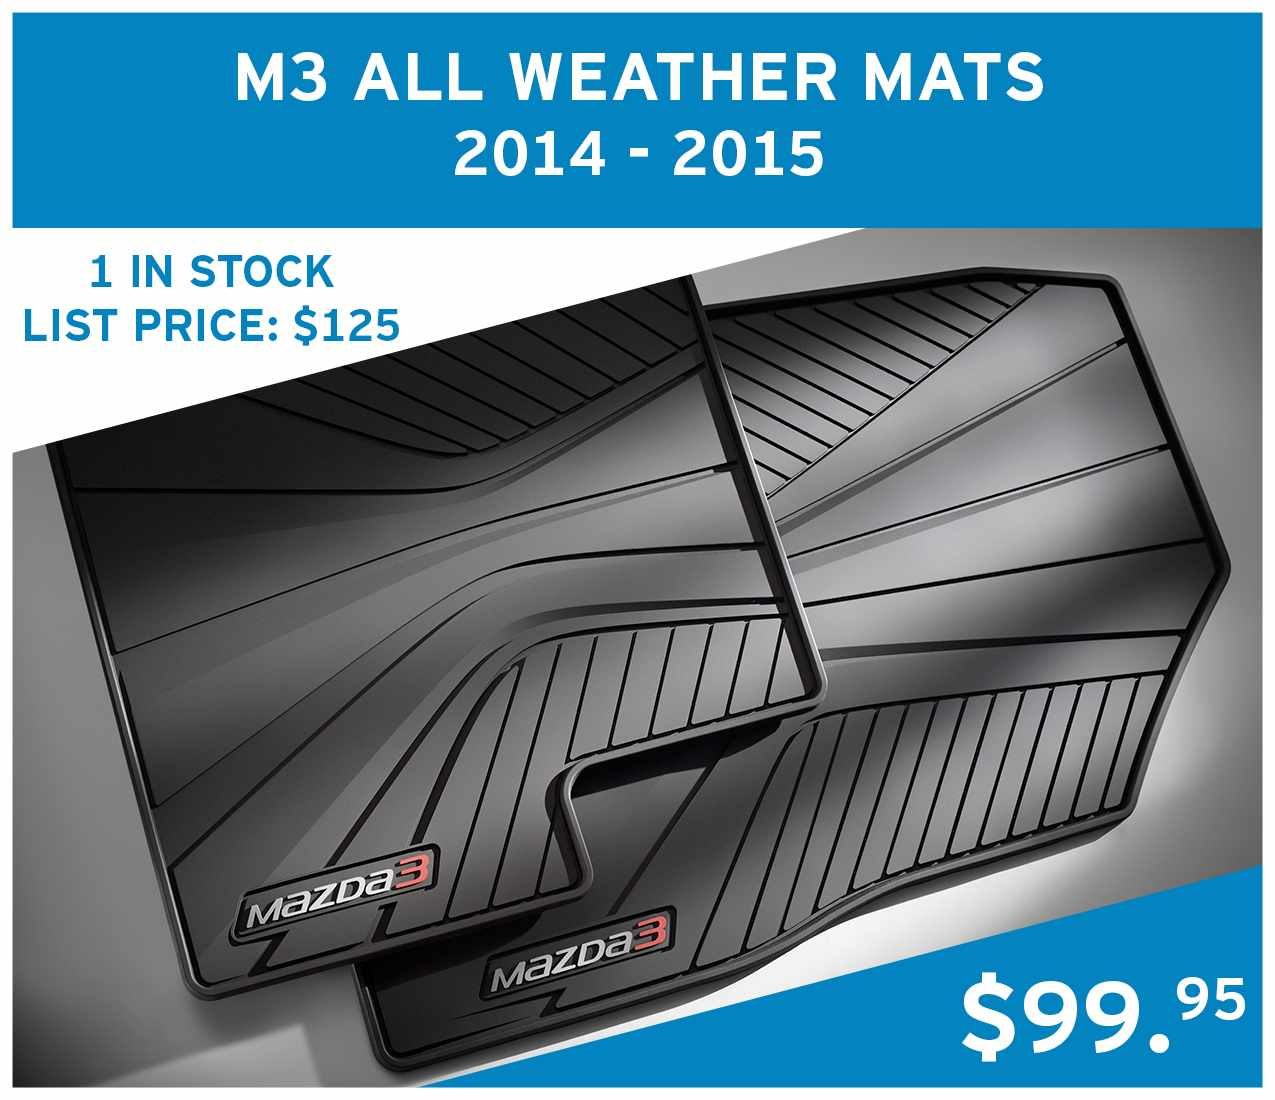 1x Mazda 3 All Weather Mats for 2014 -2015 vehicles at $99.95